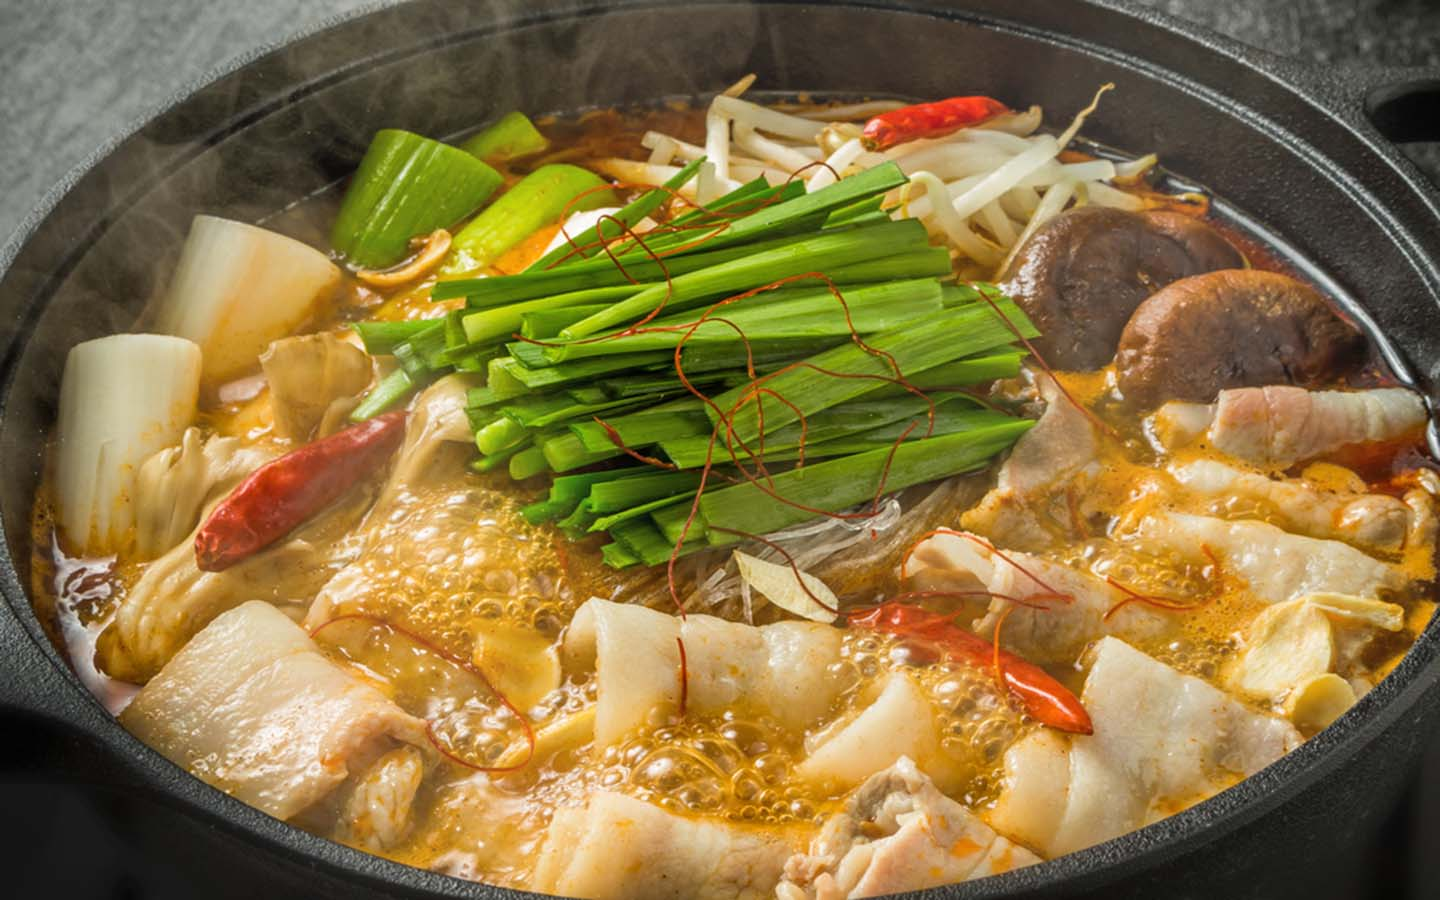 Hot pot garnished with herbs